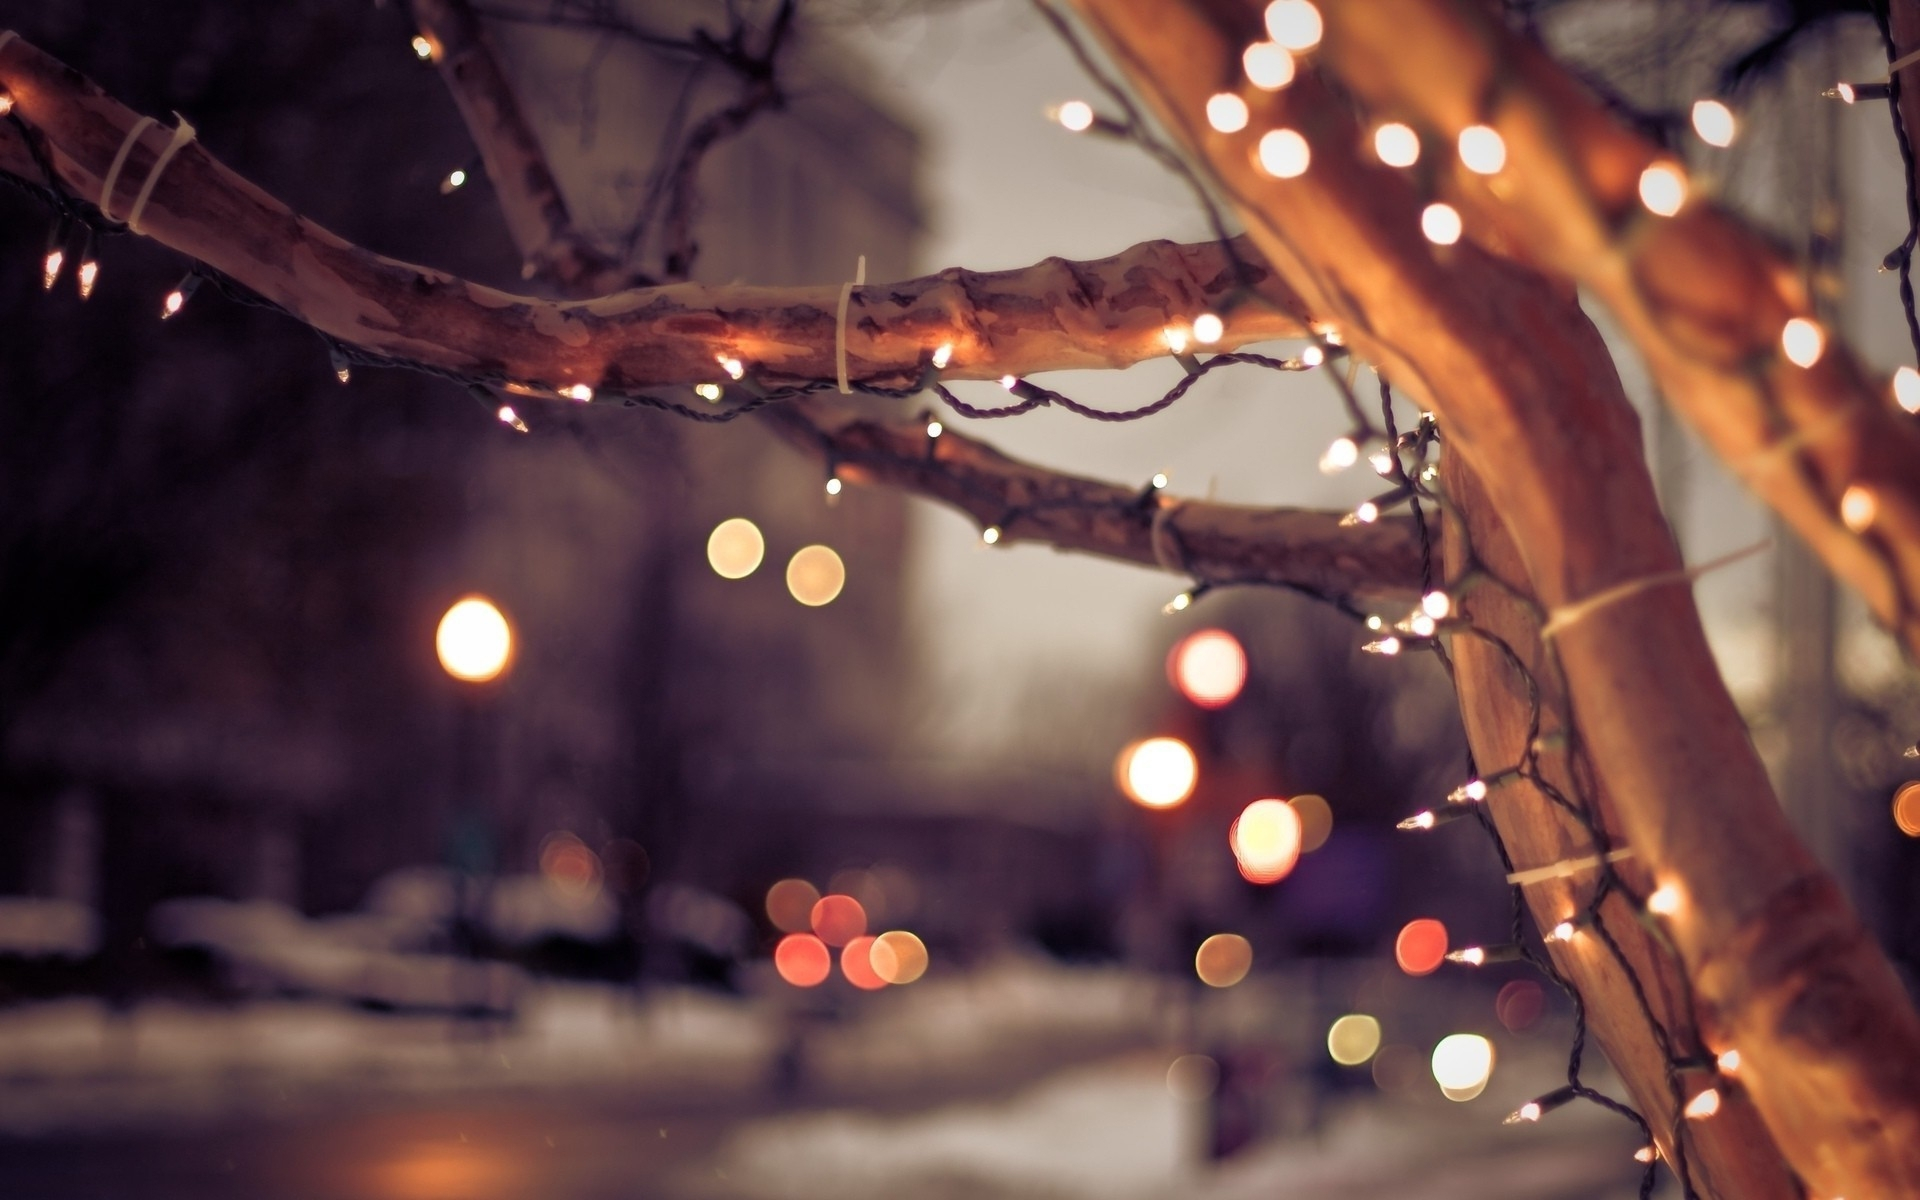 christmas-lights-desktop-hd-wallpapers - wallpaper.wiki